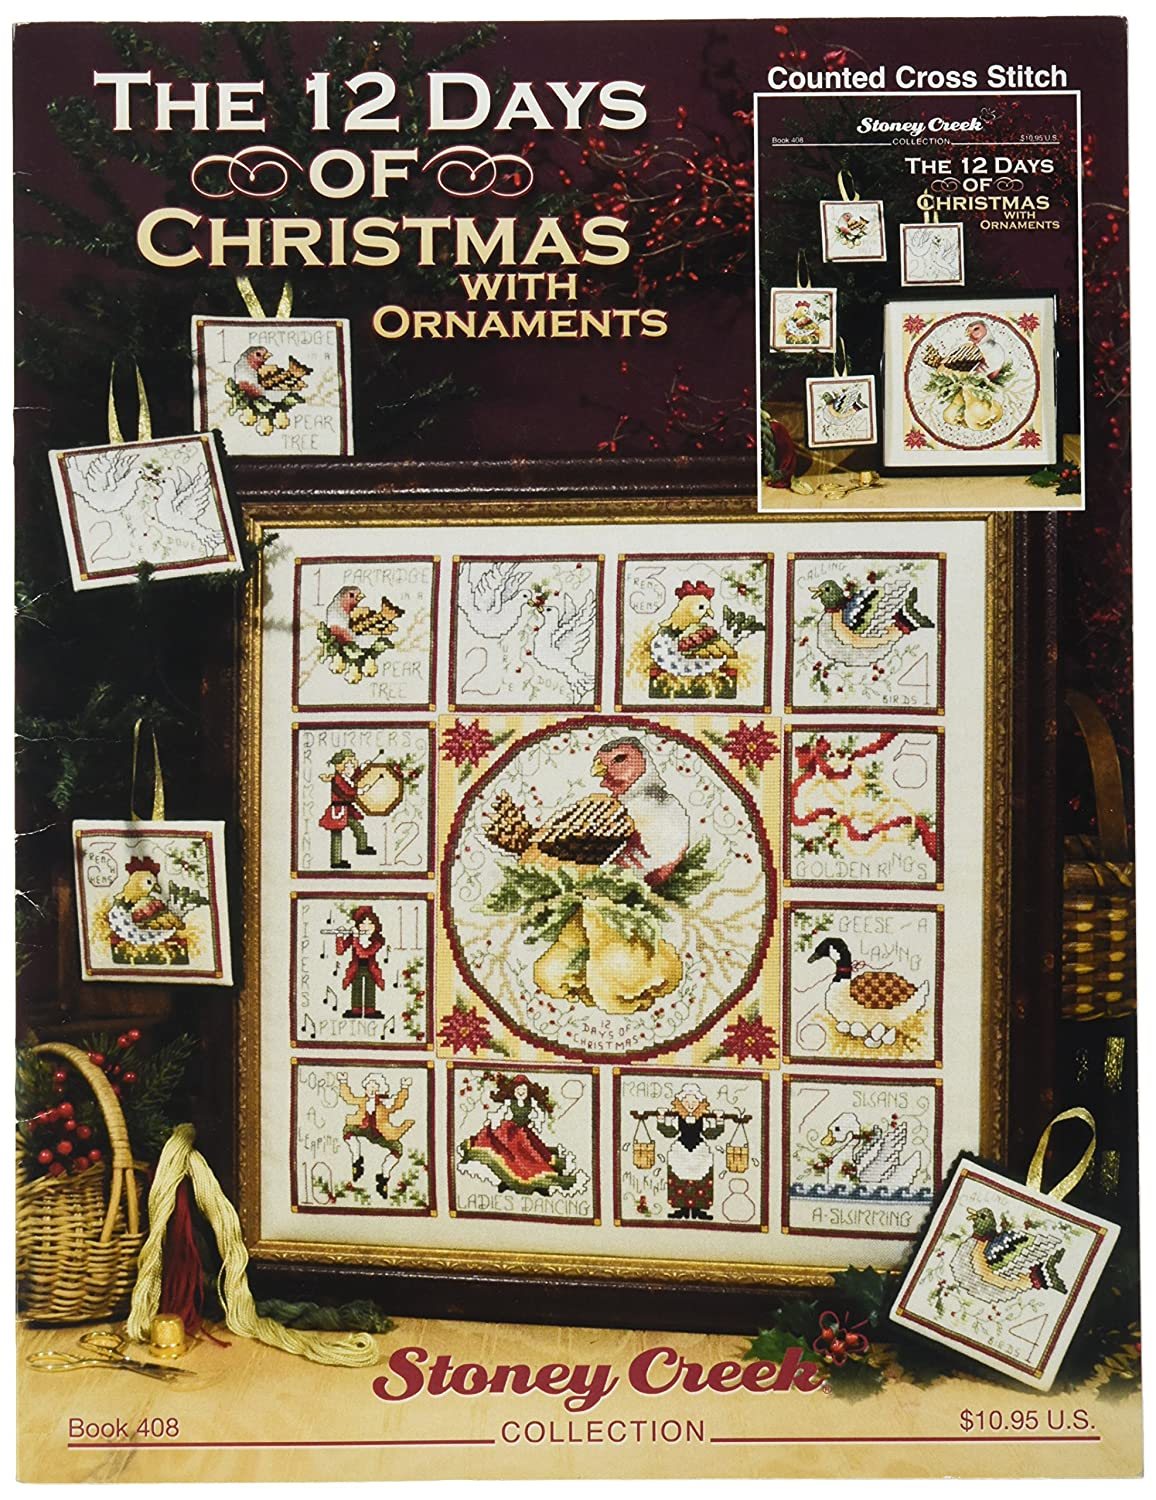 12 Days Of Christmas Cross Stitch.Stoney Creek The 12 Days Of Christmas With Ornaments Book